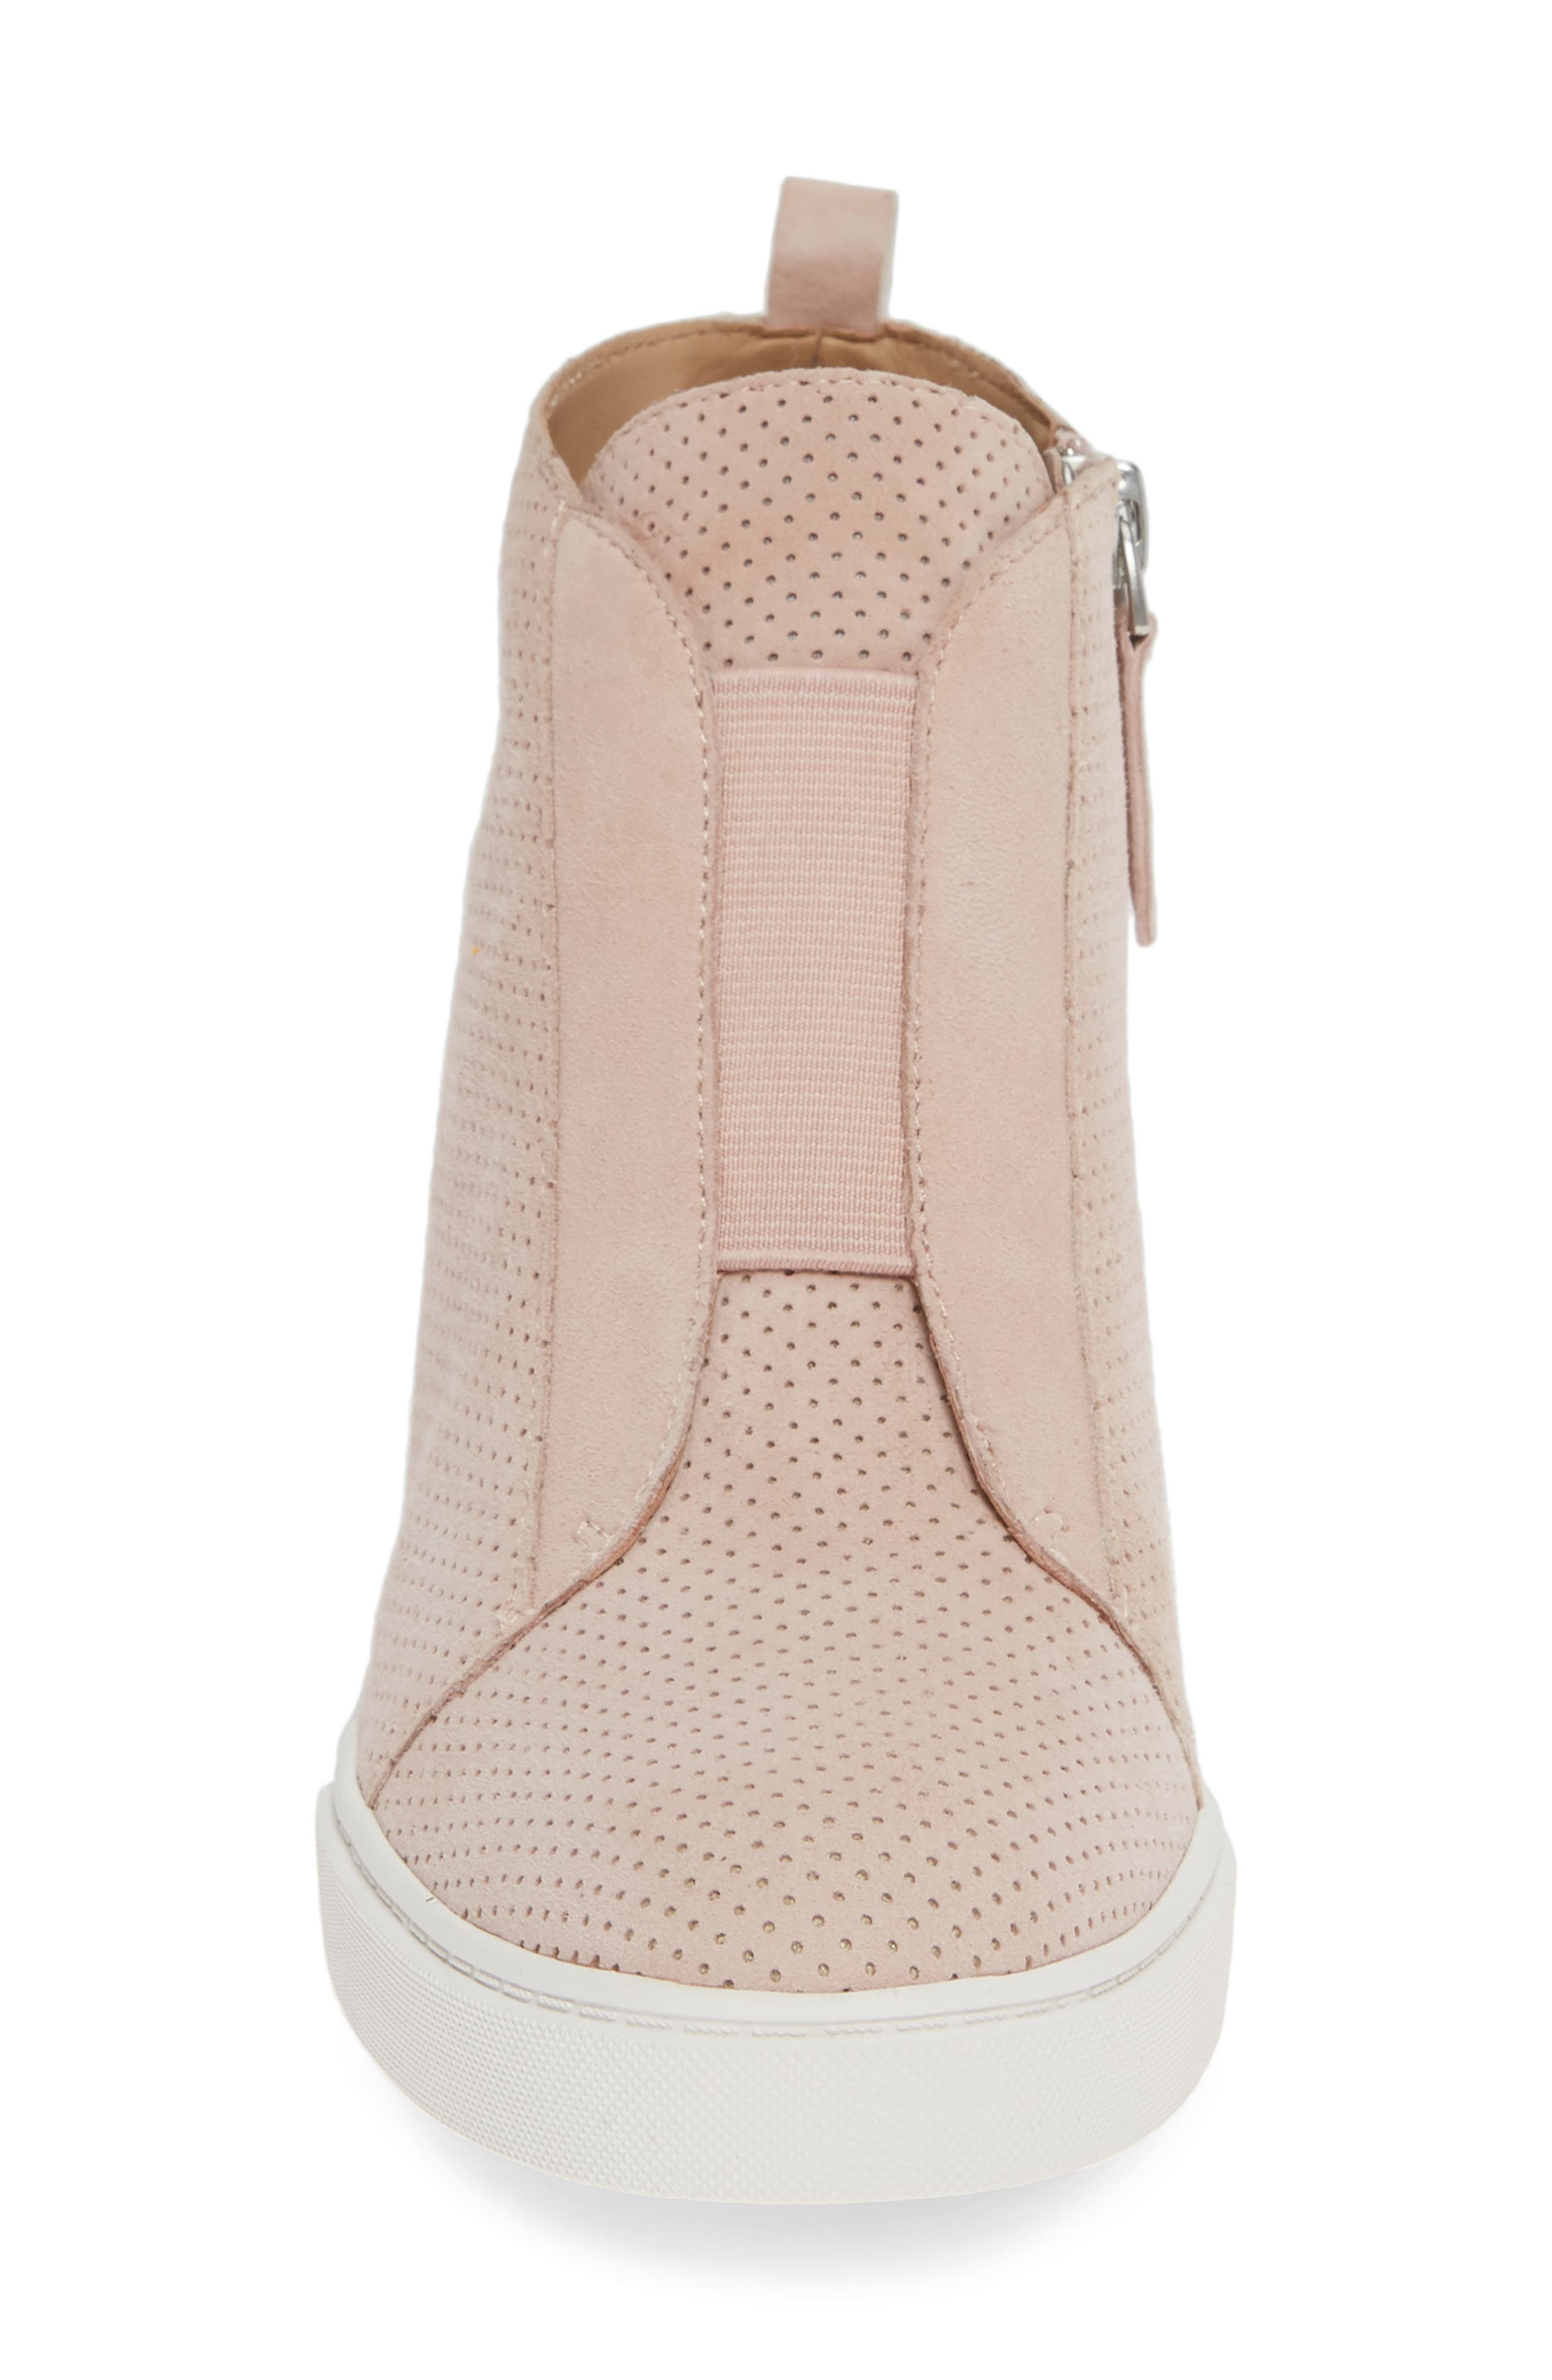 Felicia Wedge Bootie,                             Alternate thumbnail 4, color,                             BLUSH PERFORATED SUEDE